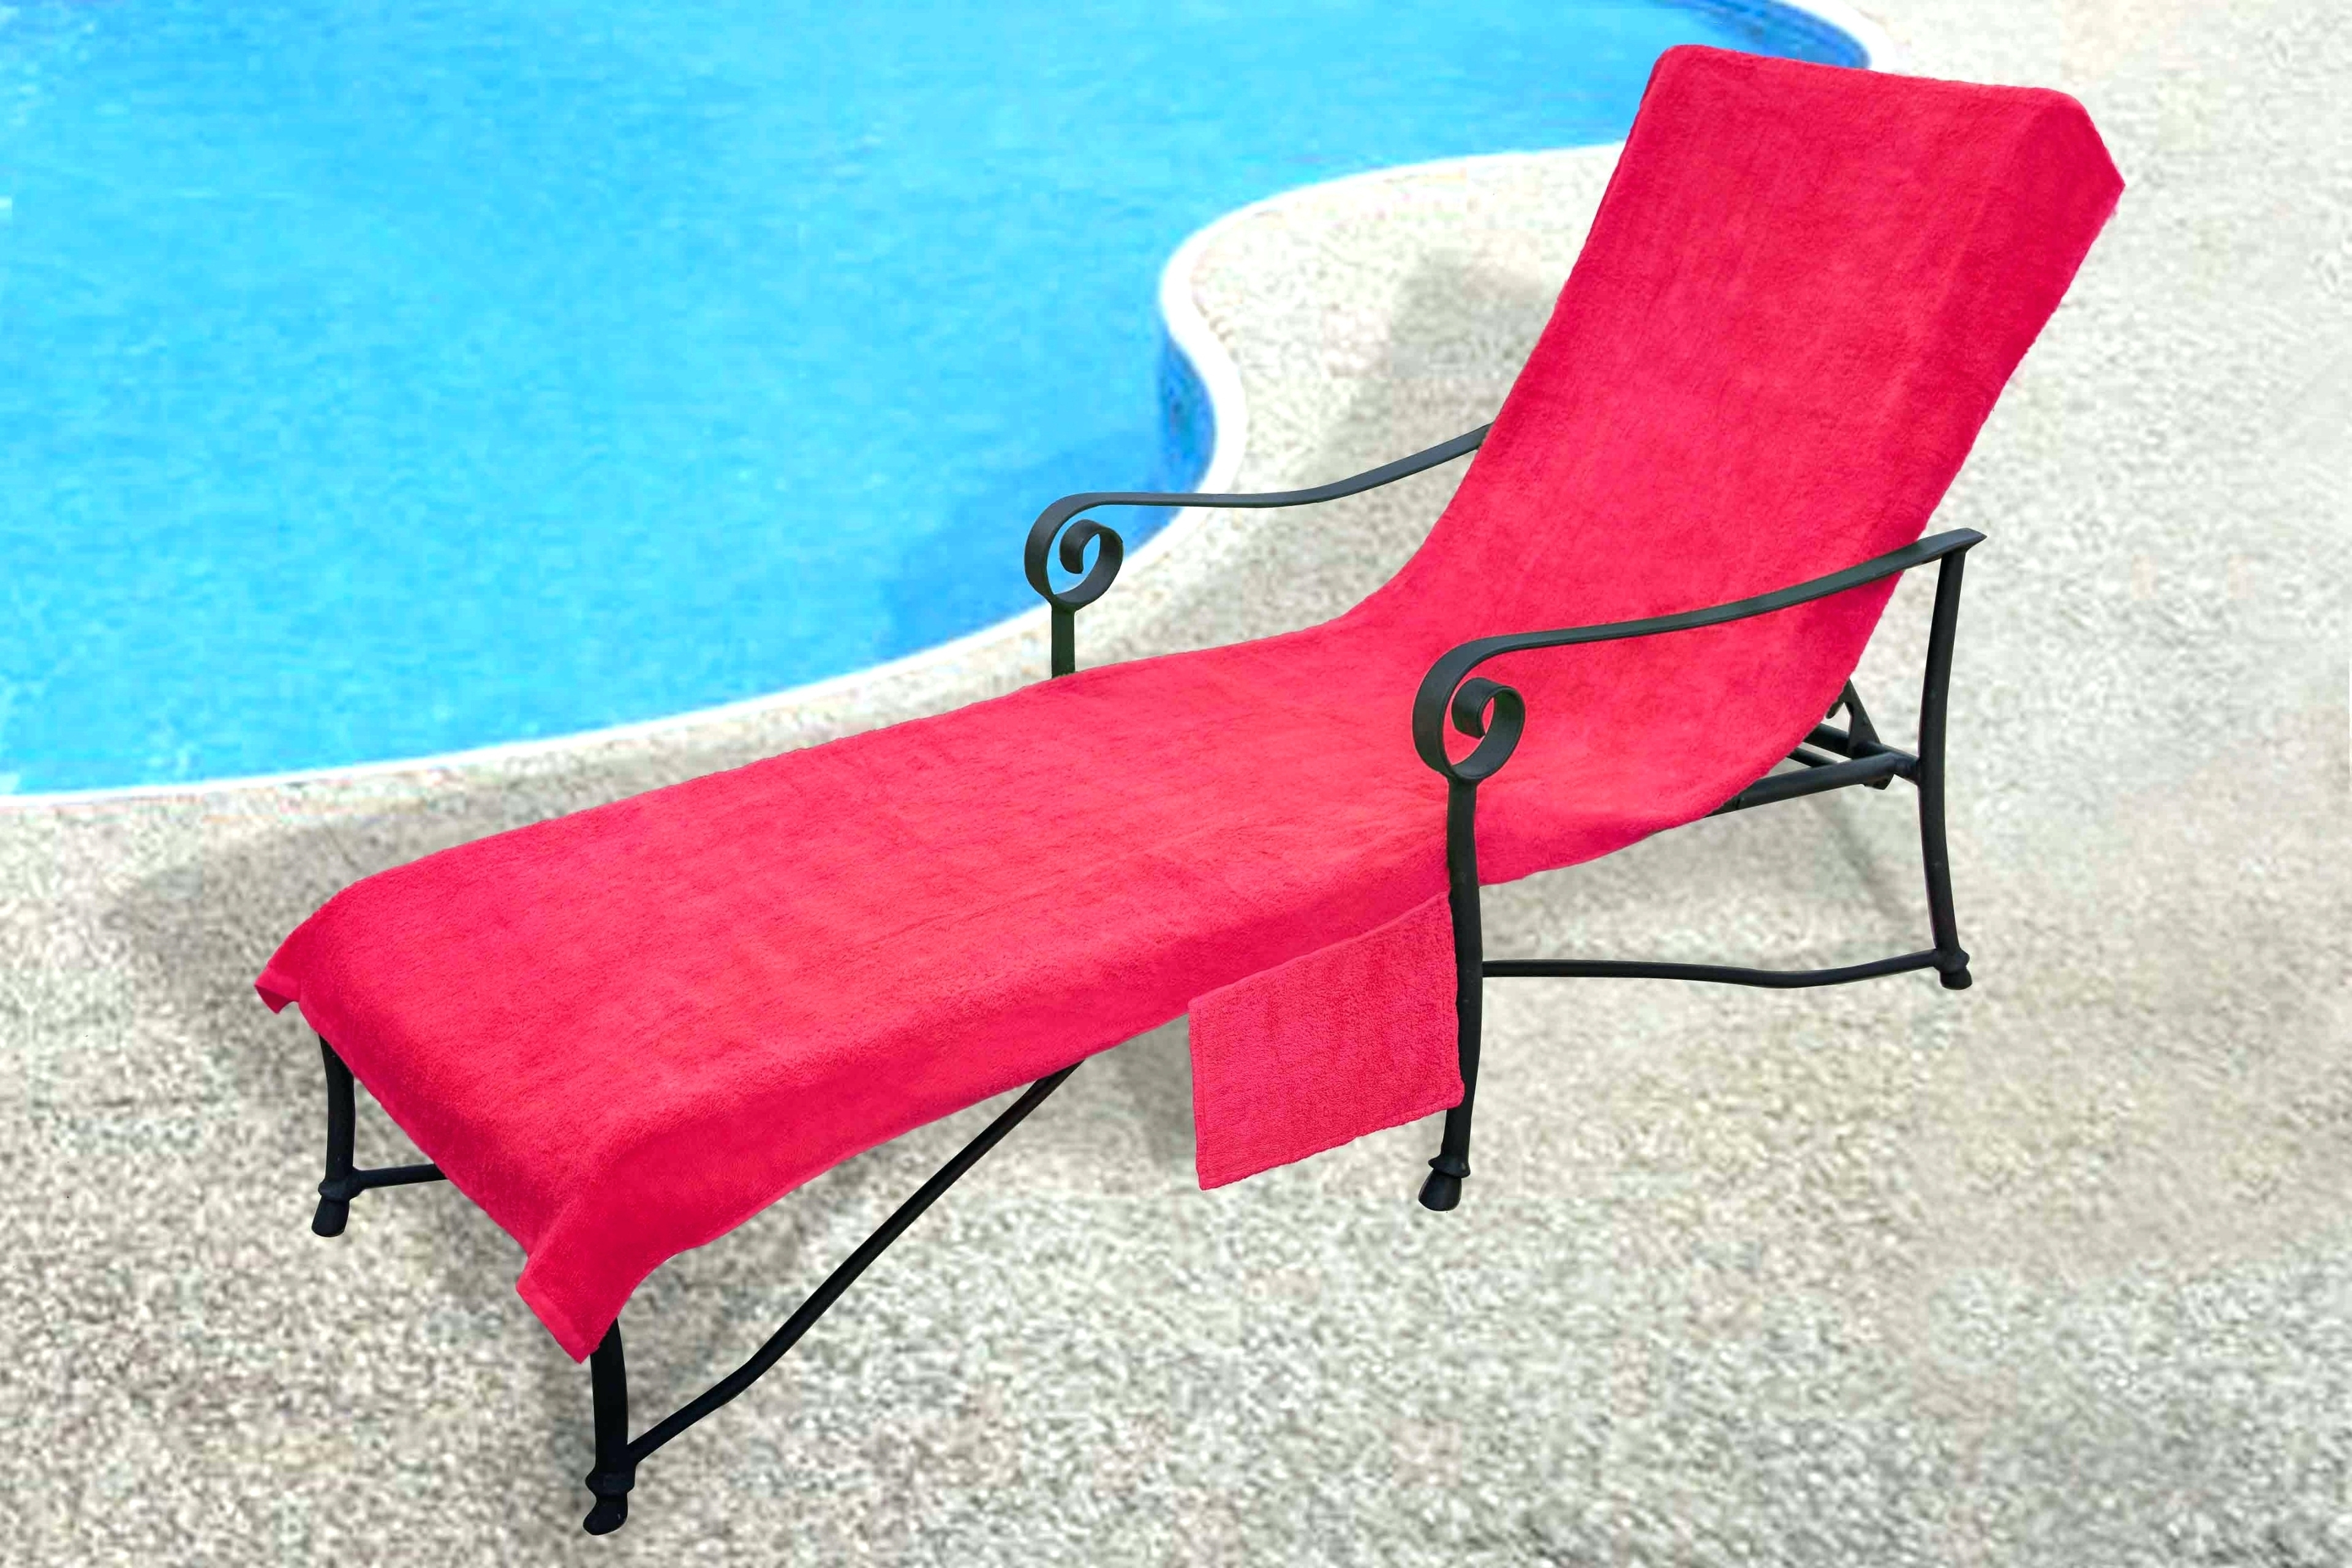 Bahama Beach Towel Chair Covers • Chair Covers Design Intended For Most Current Chaise Covers (View 15 of 15)